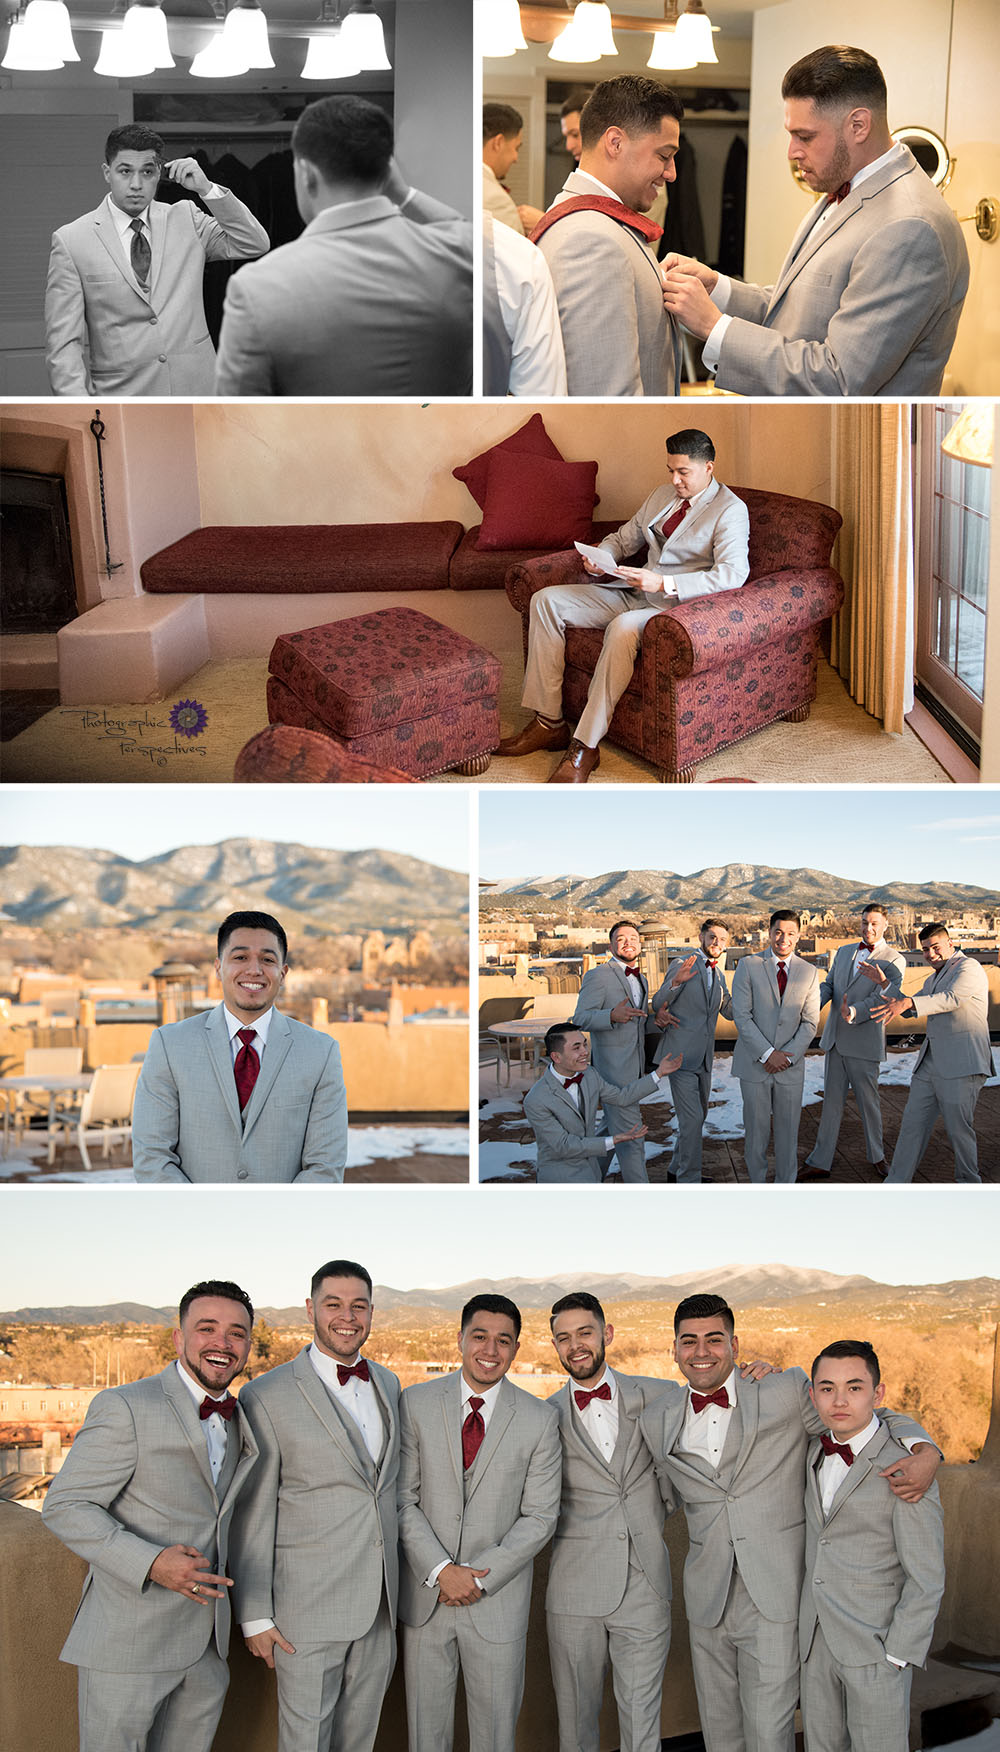 Eli prepared for his bride with his friends. Looking Stylish in their grey suits and red bow ties.